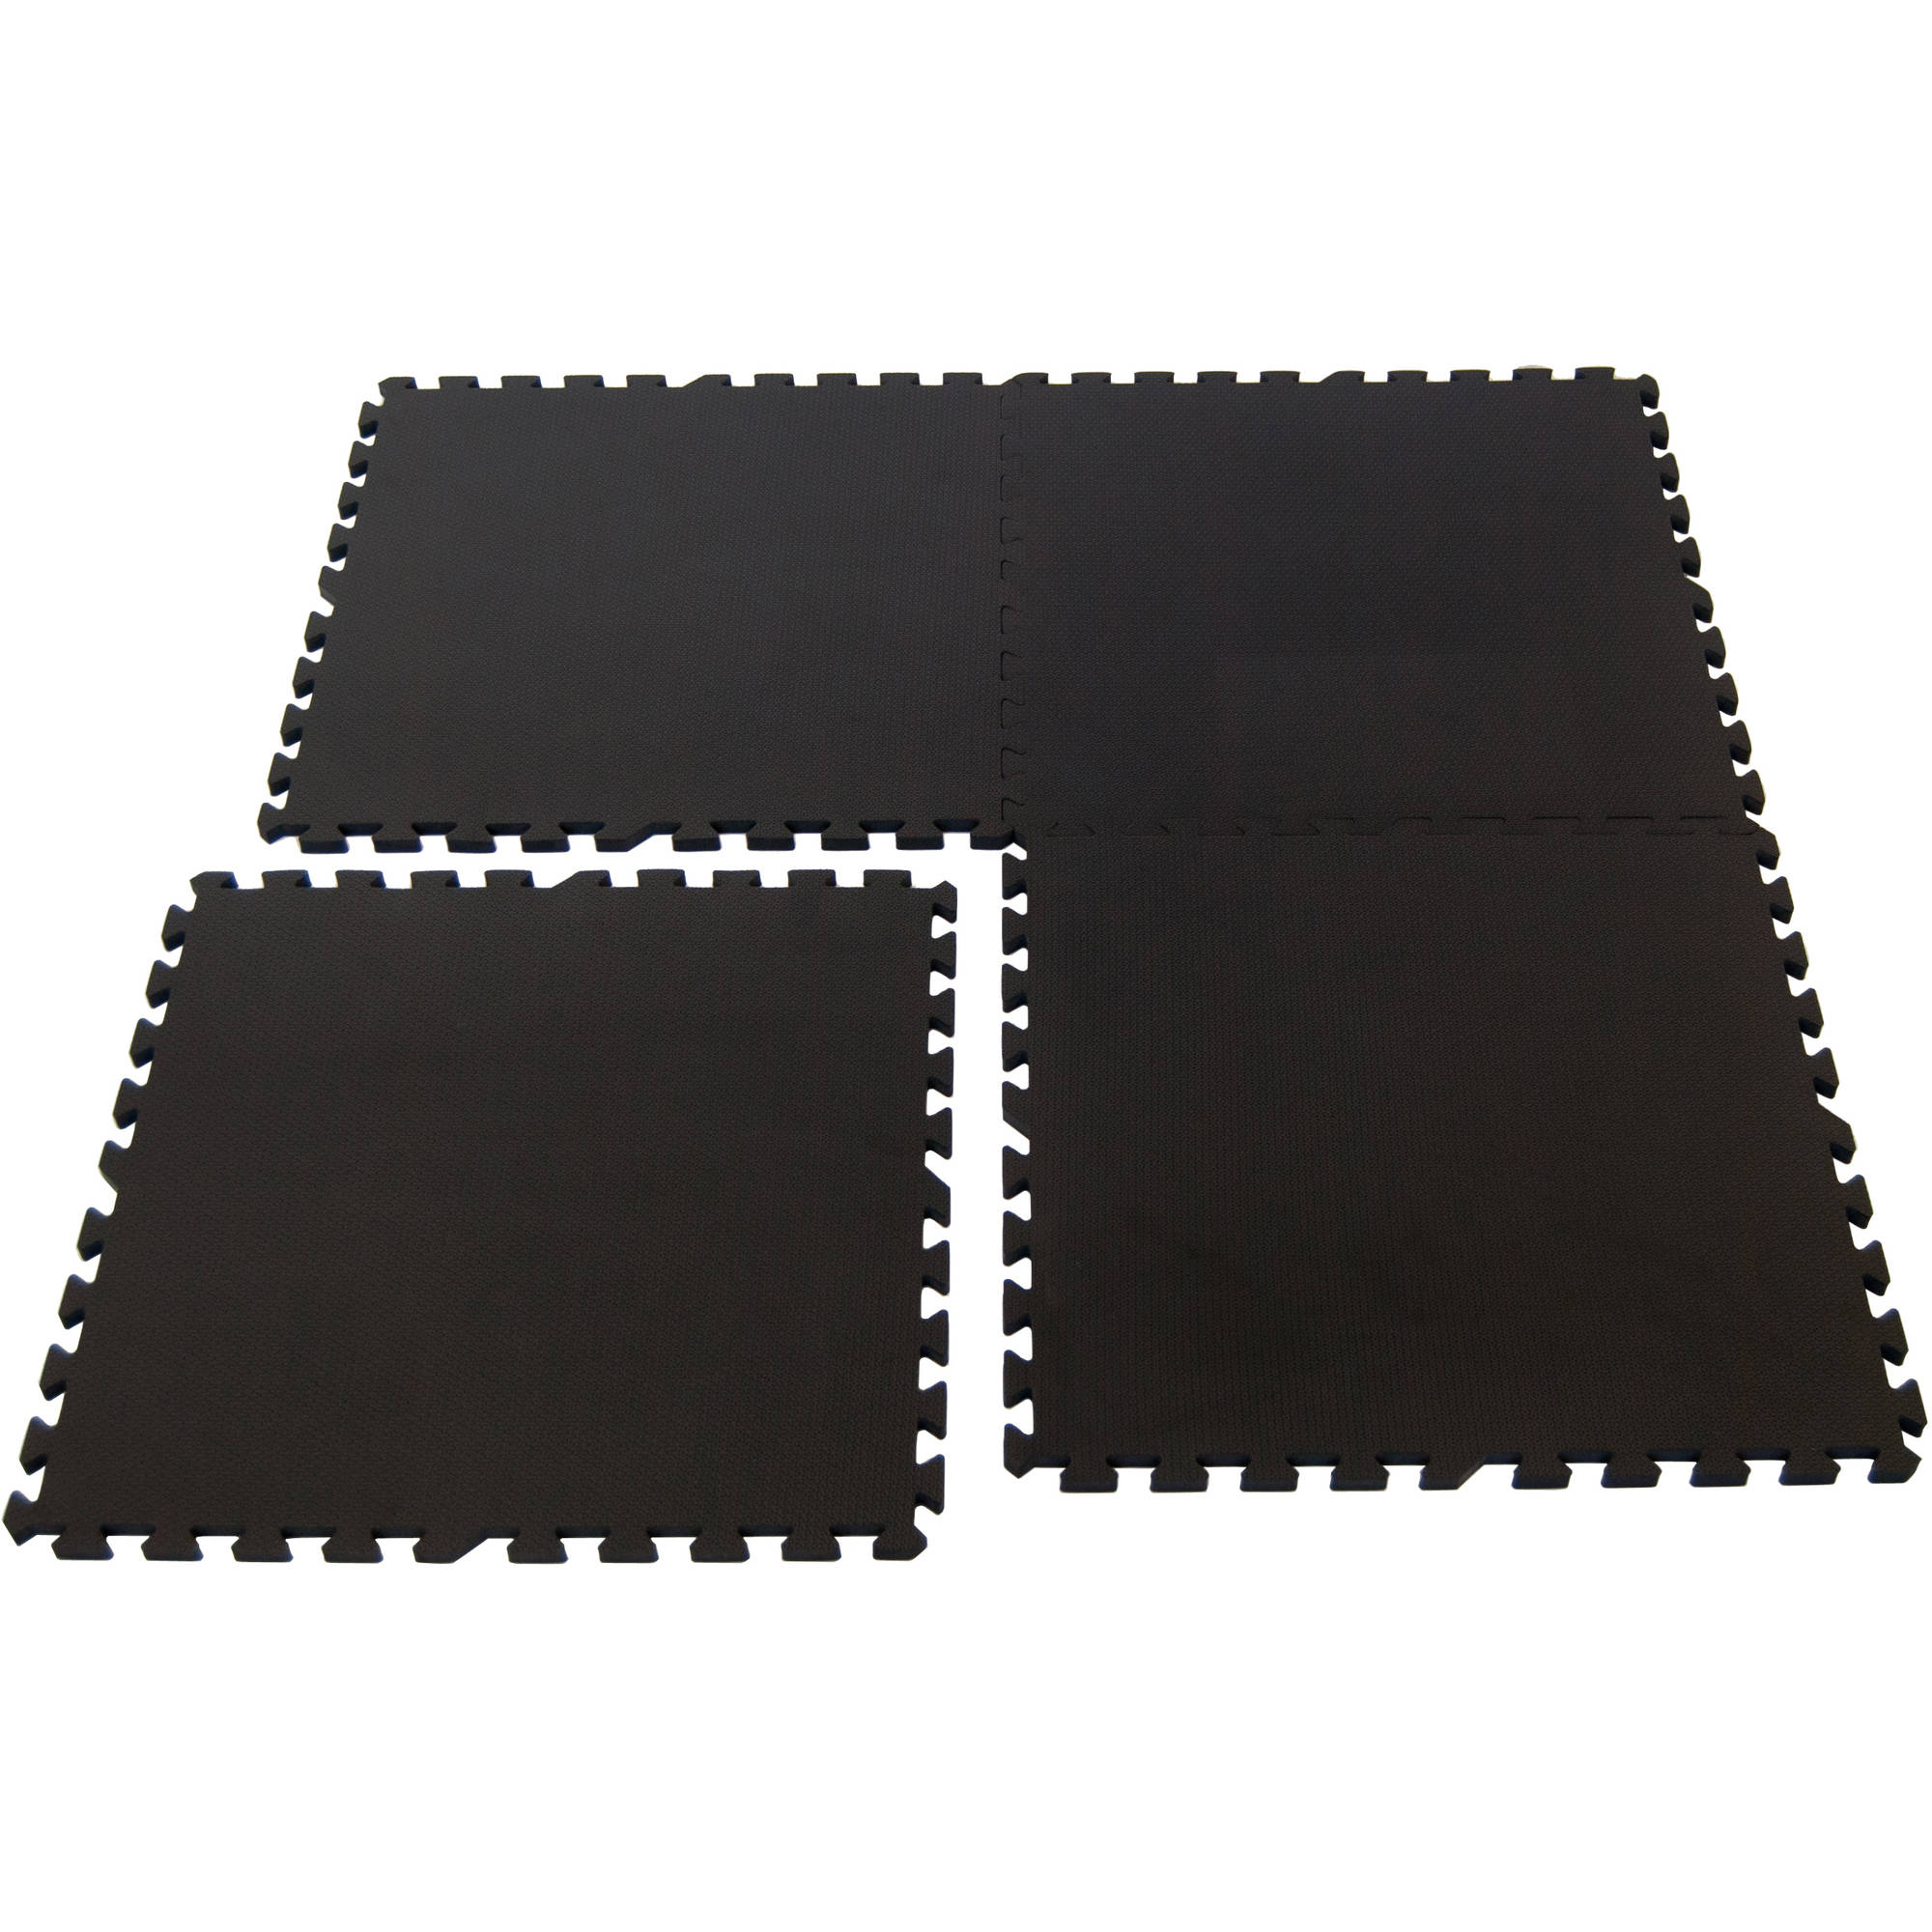 Wonder Mat Quality Multipurpose Anti-Fatigue Extra Thick Mats (Set of 4), Black, 2' x 2'